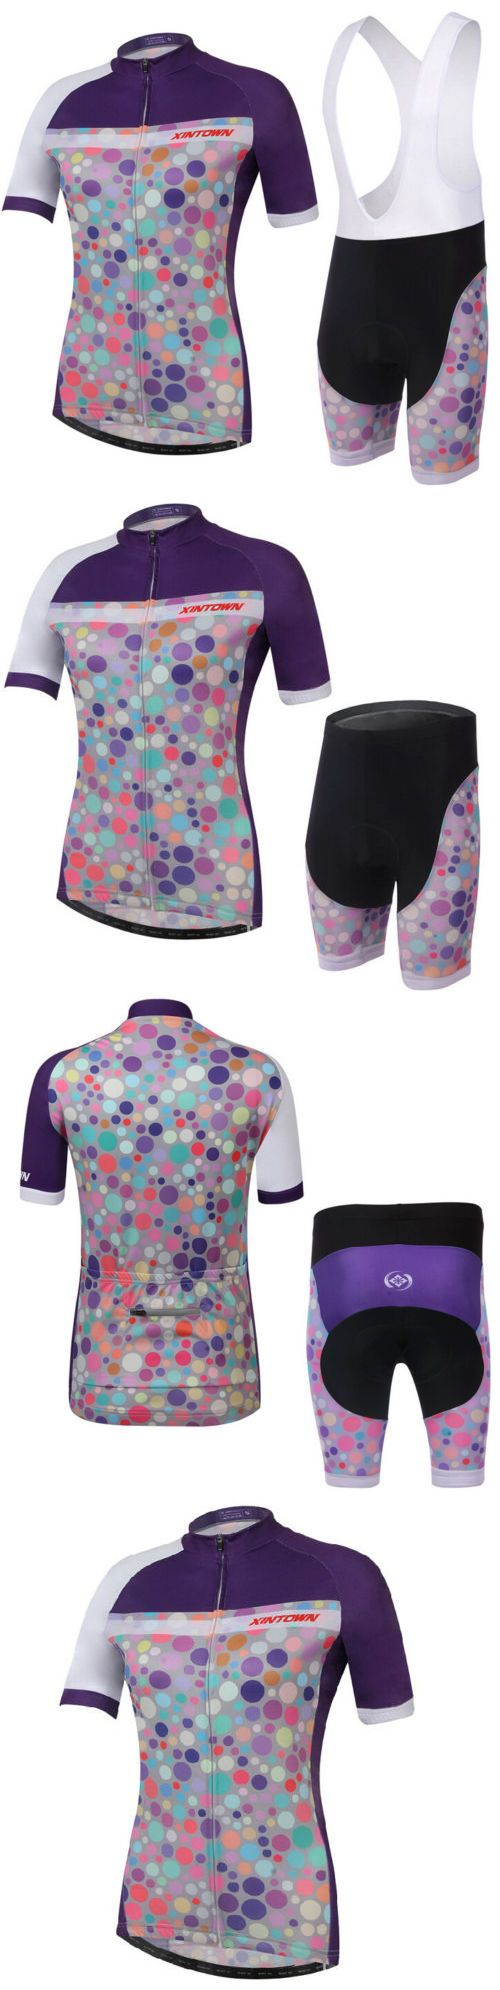 Jersey and Pant Short Sets 177852: Womens Cycling Jersey + (Bib) Shorts Set Color Dots Mtb Clothing Cycling Kit BUY IT NOW ONLY: $31.99